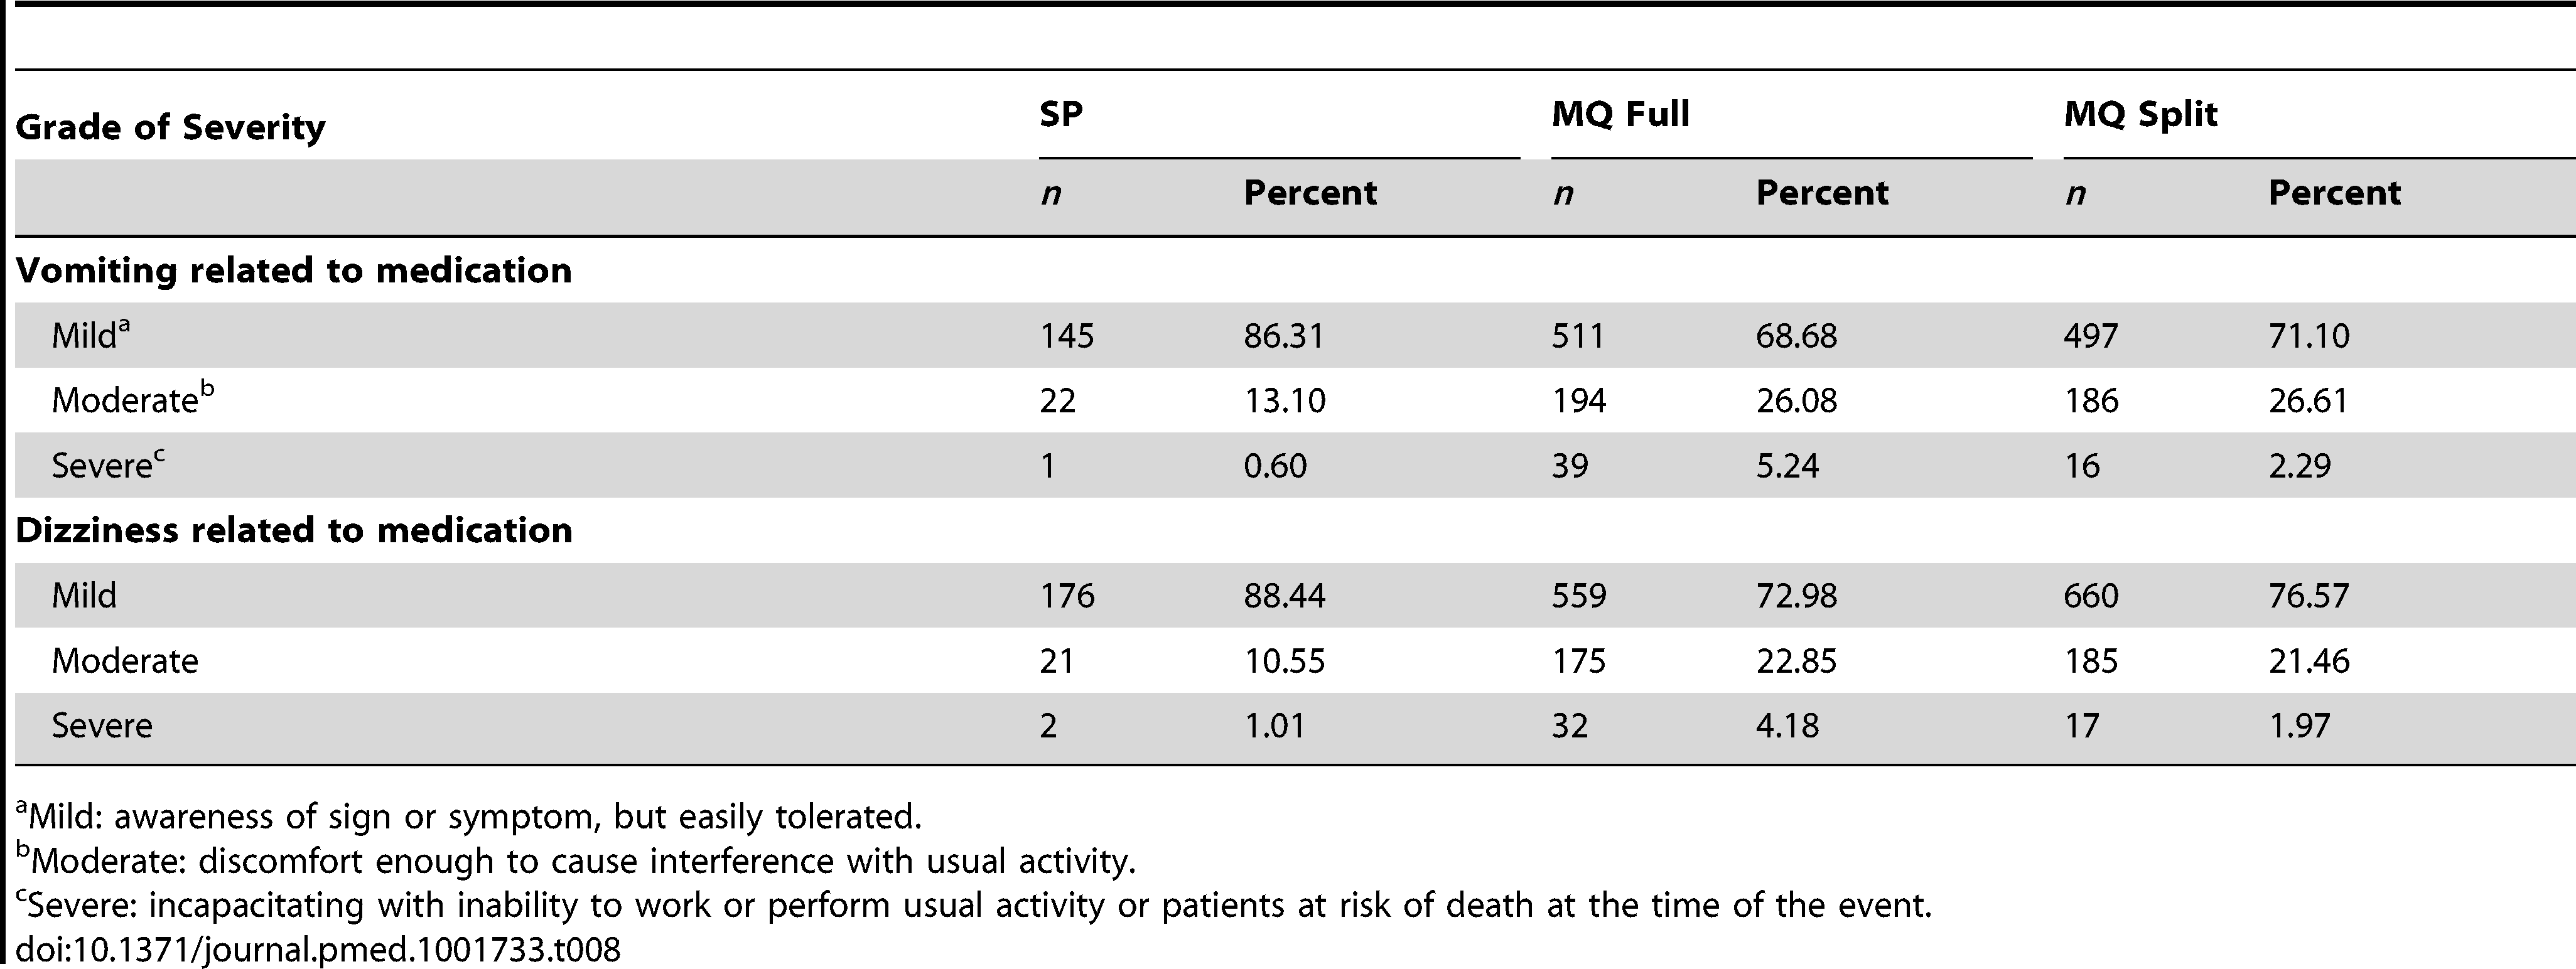 Severity of reported vomiting and dizziness by treatment group.